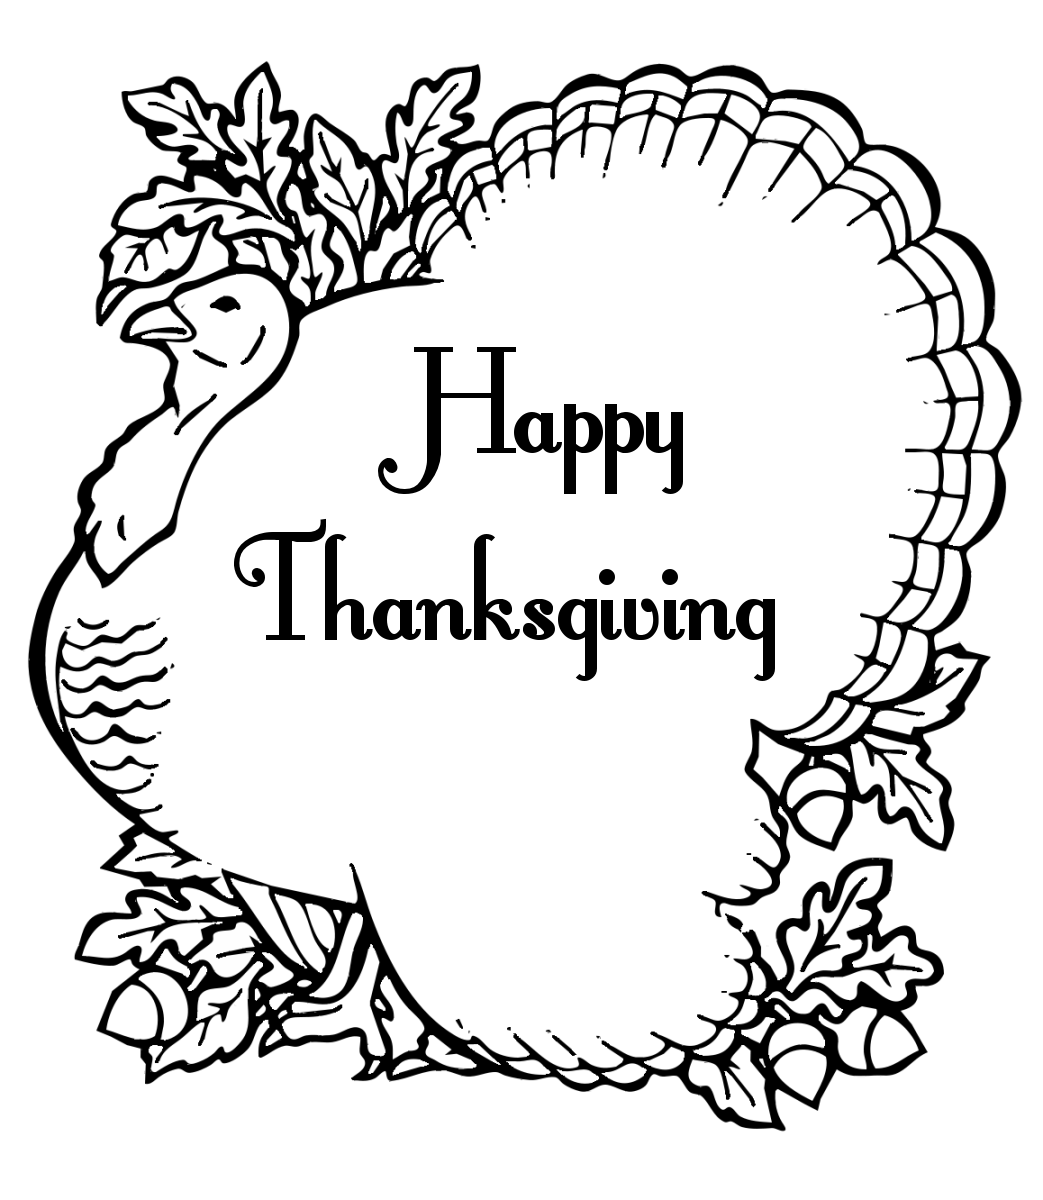 hanksgiving coloring pages - photo#3